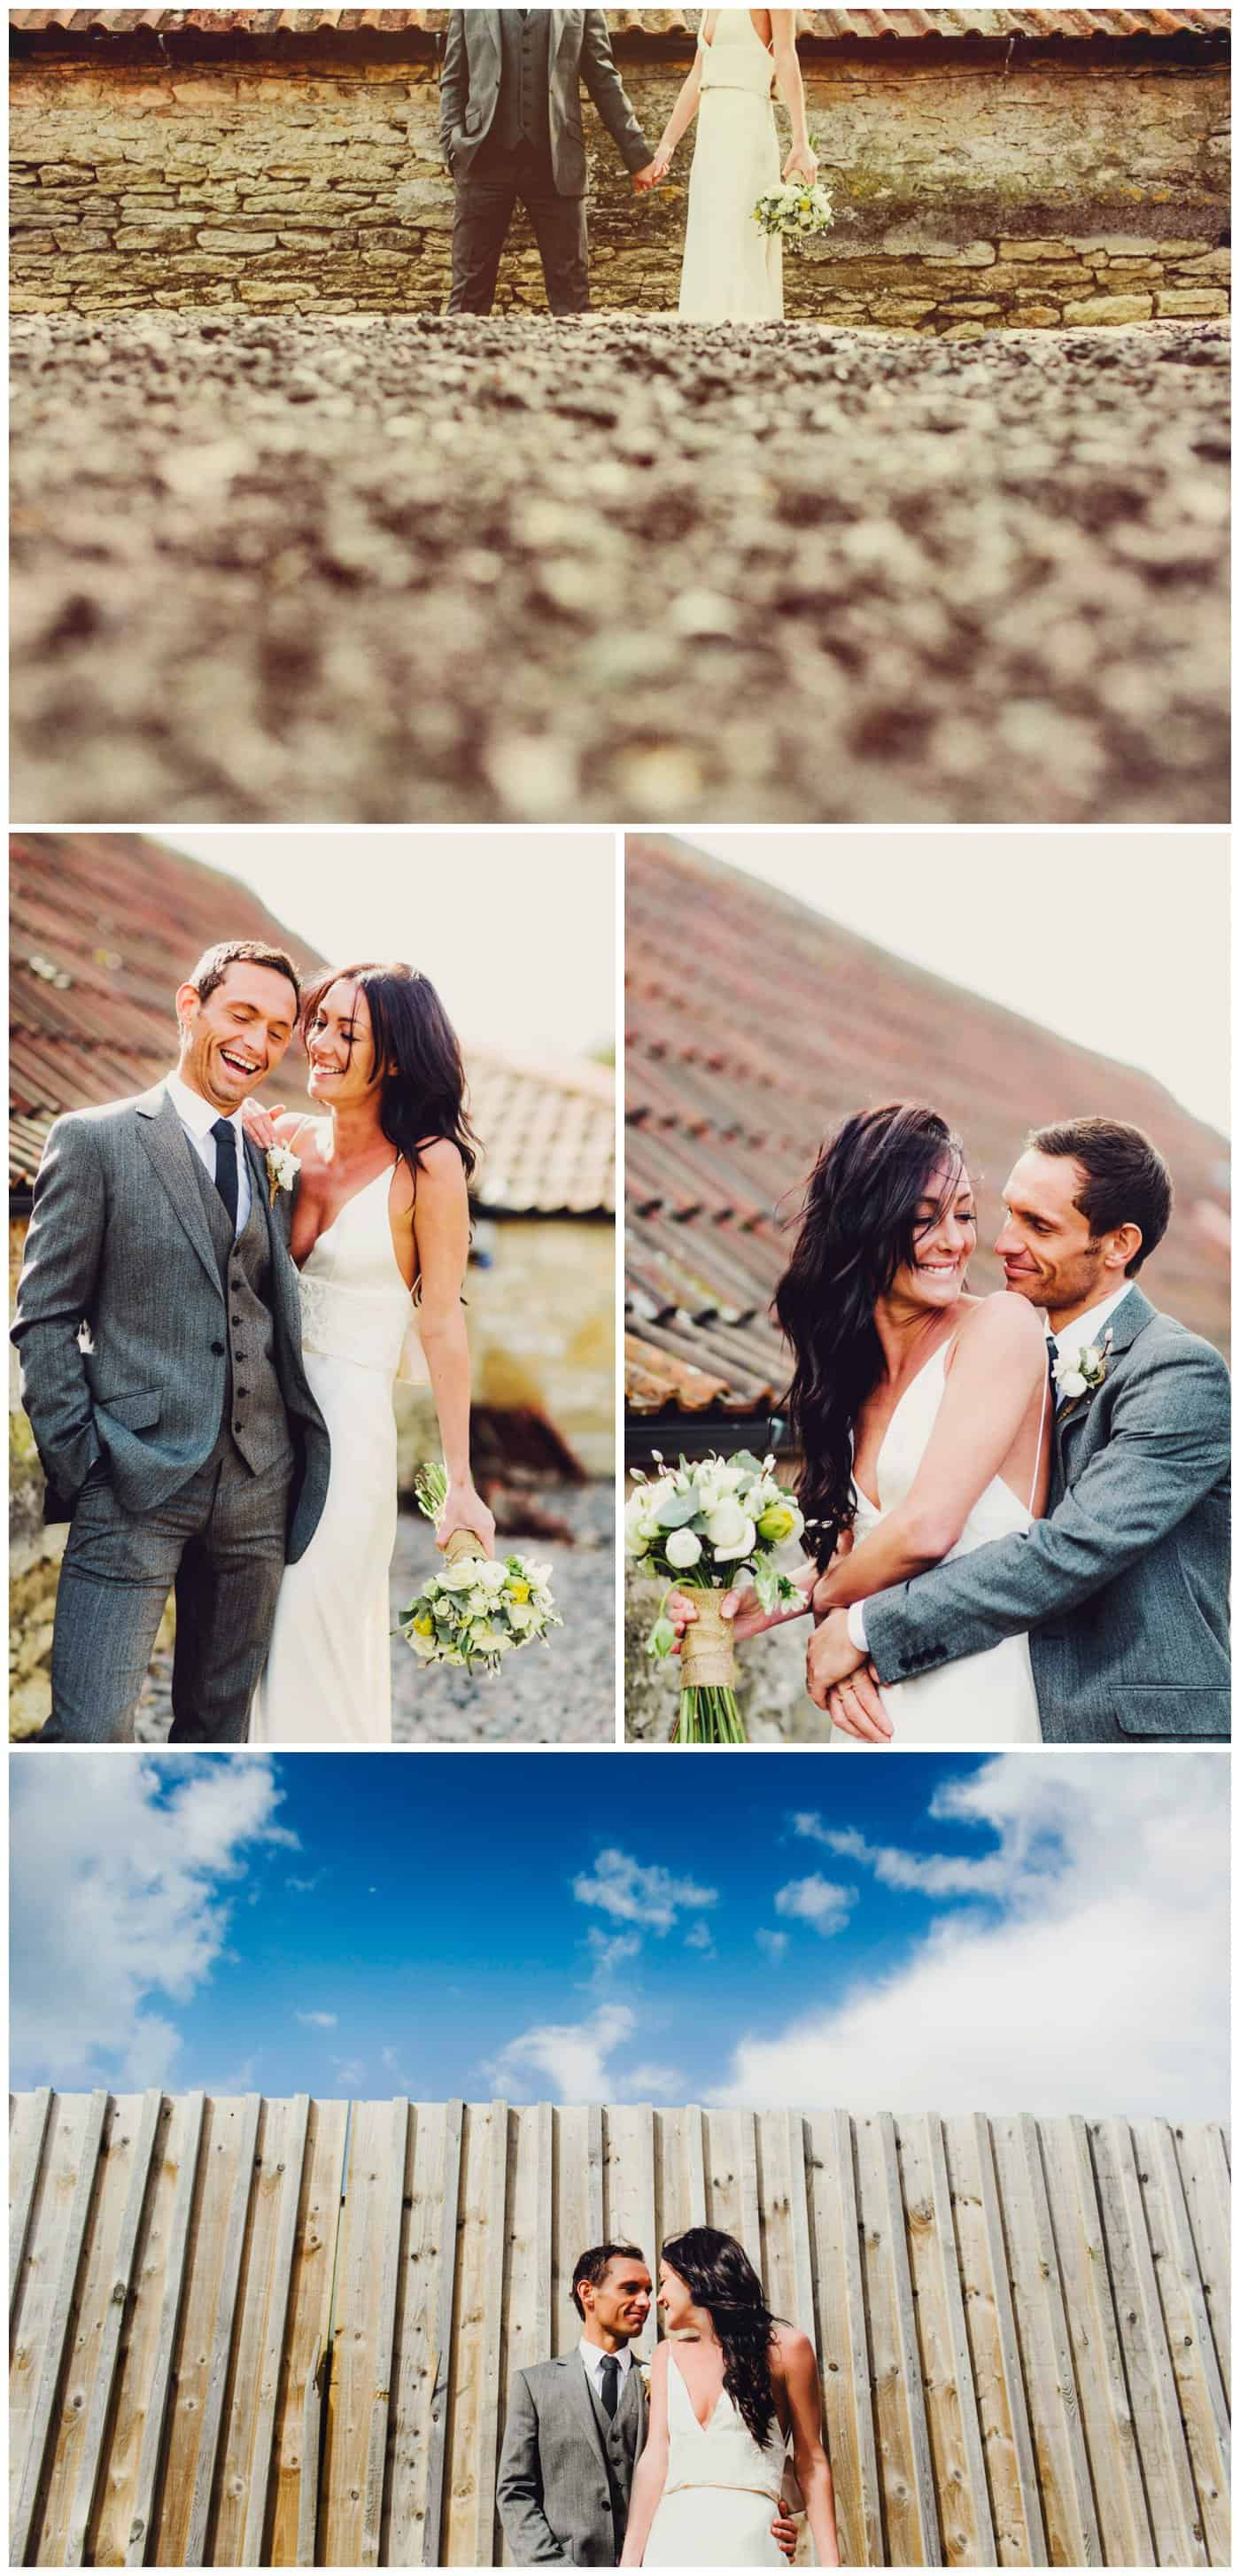 Kingscote Barn wedding packages